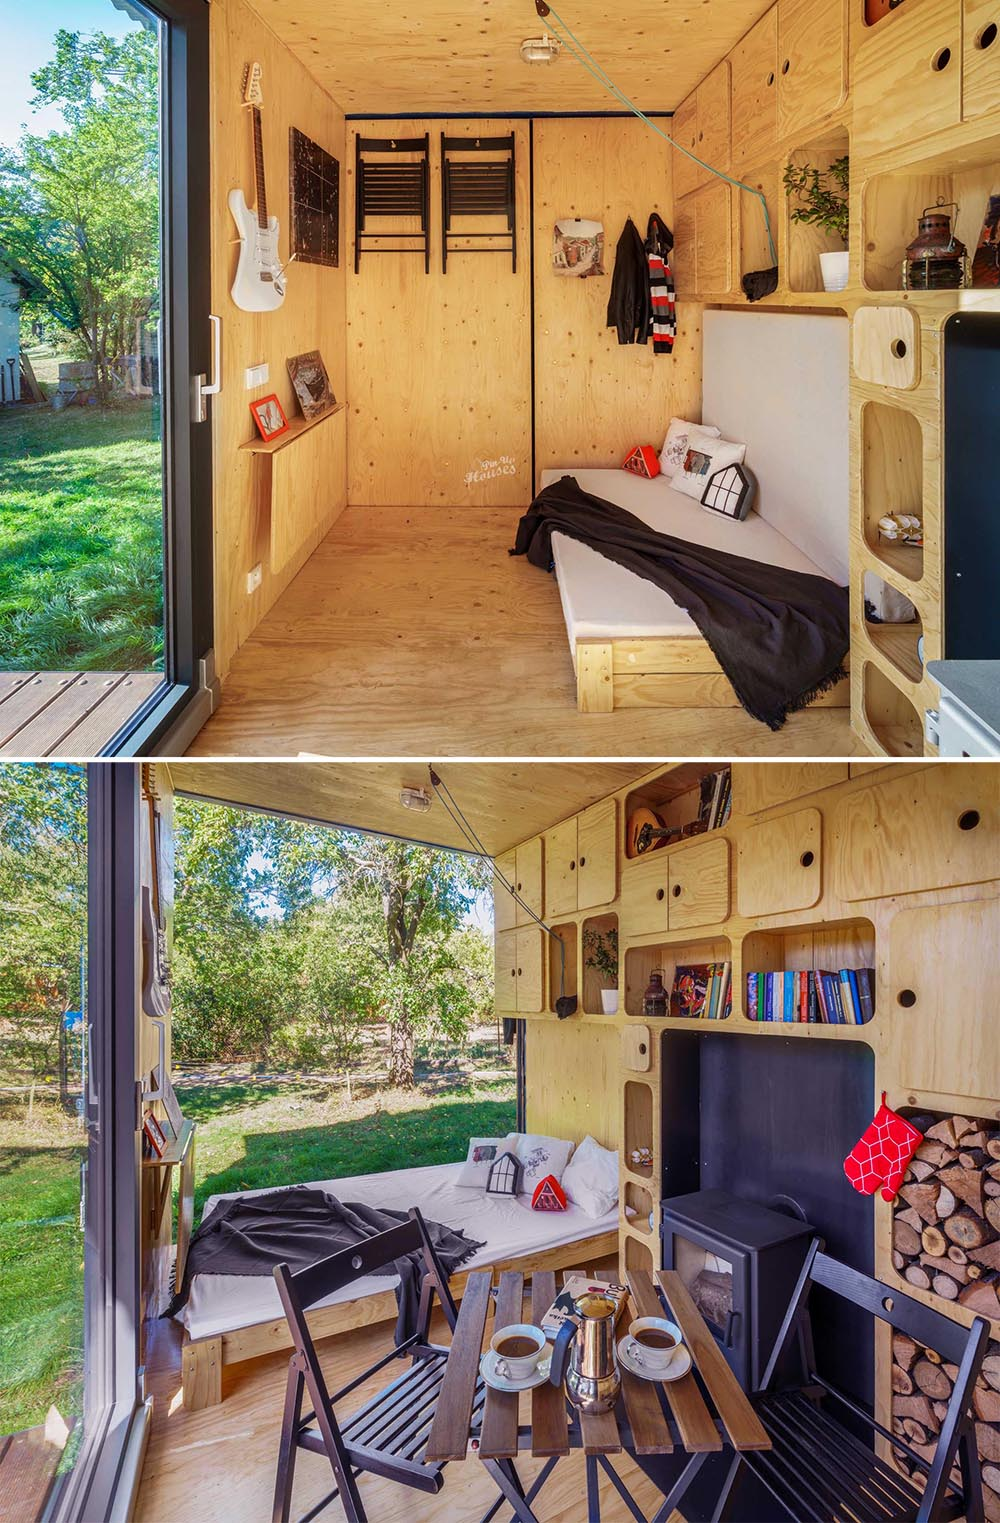 A tiny home made from a shipping container has plenty of storage cabinets and a fireplace.